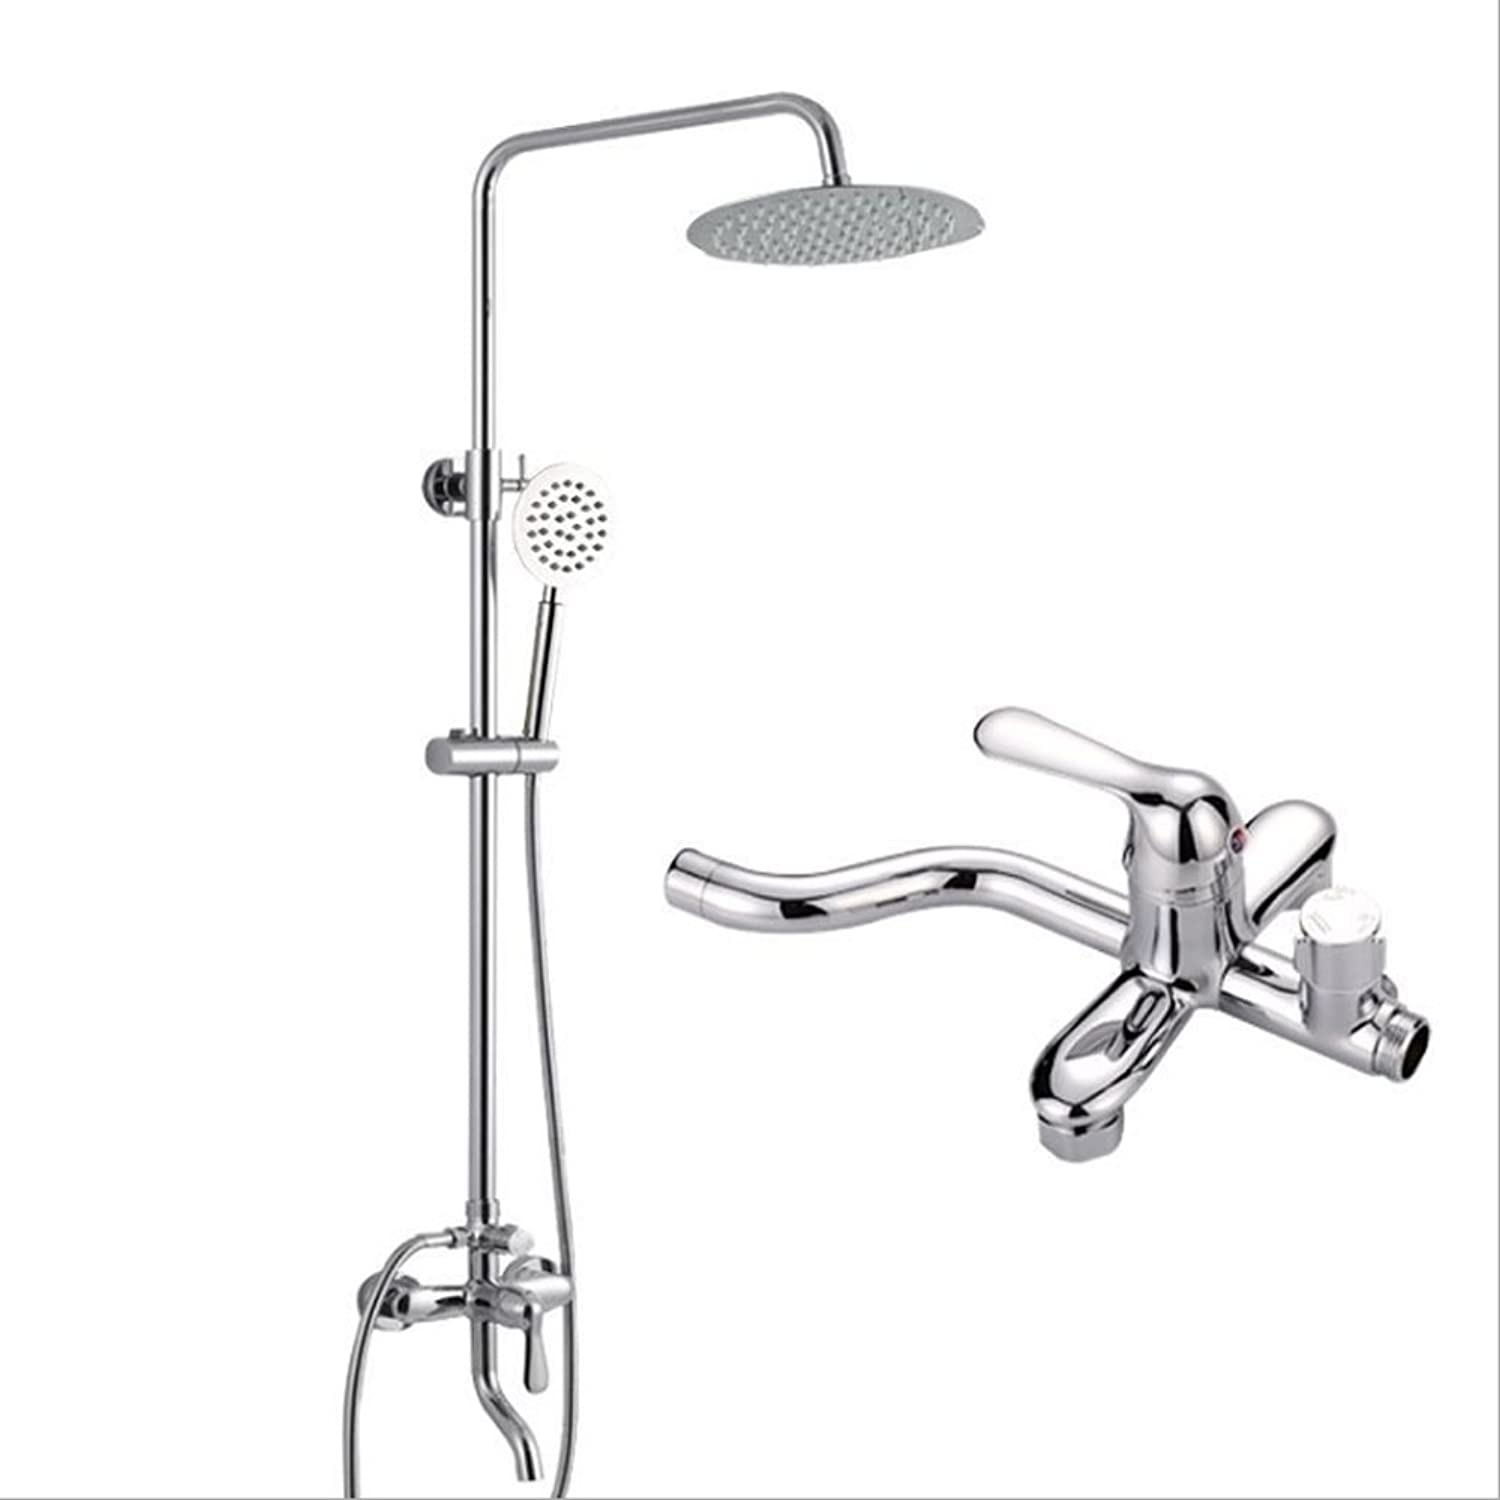 Jiaju hot and cold water mixing faucet shower set bathroom three stalls shower shower head